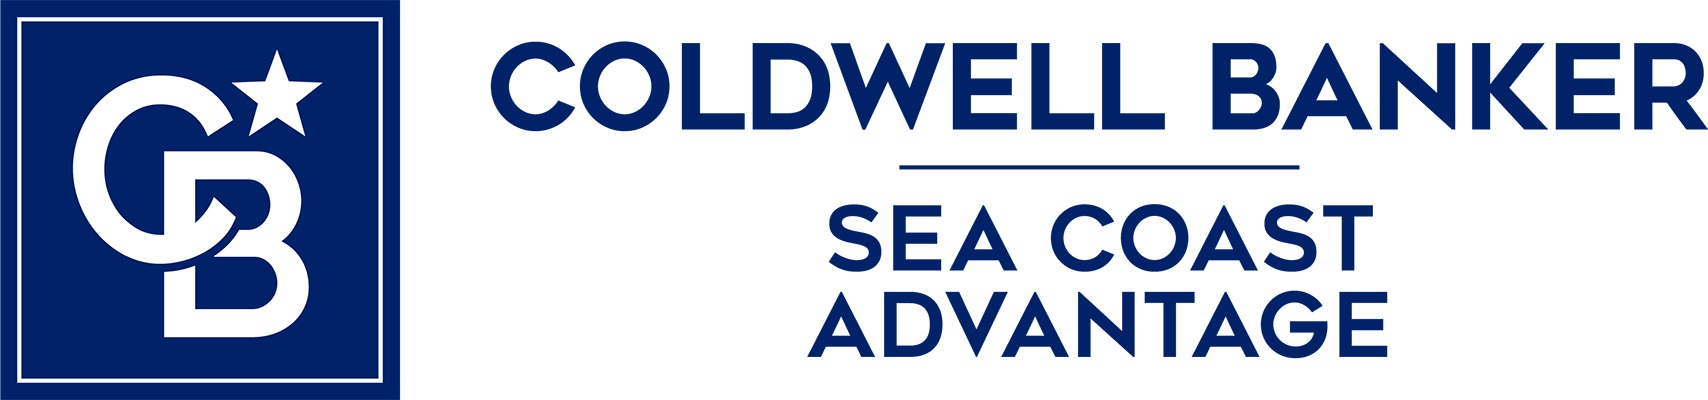 Courtney Younghans - Coldwell Banker Sea Coast Advantage Realty Logo